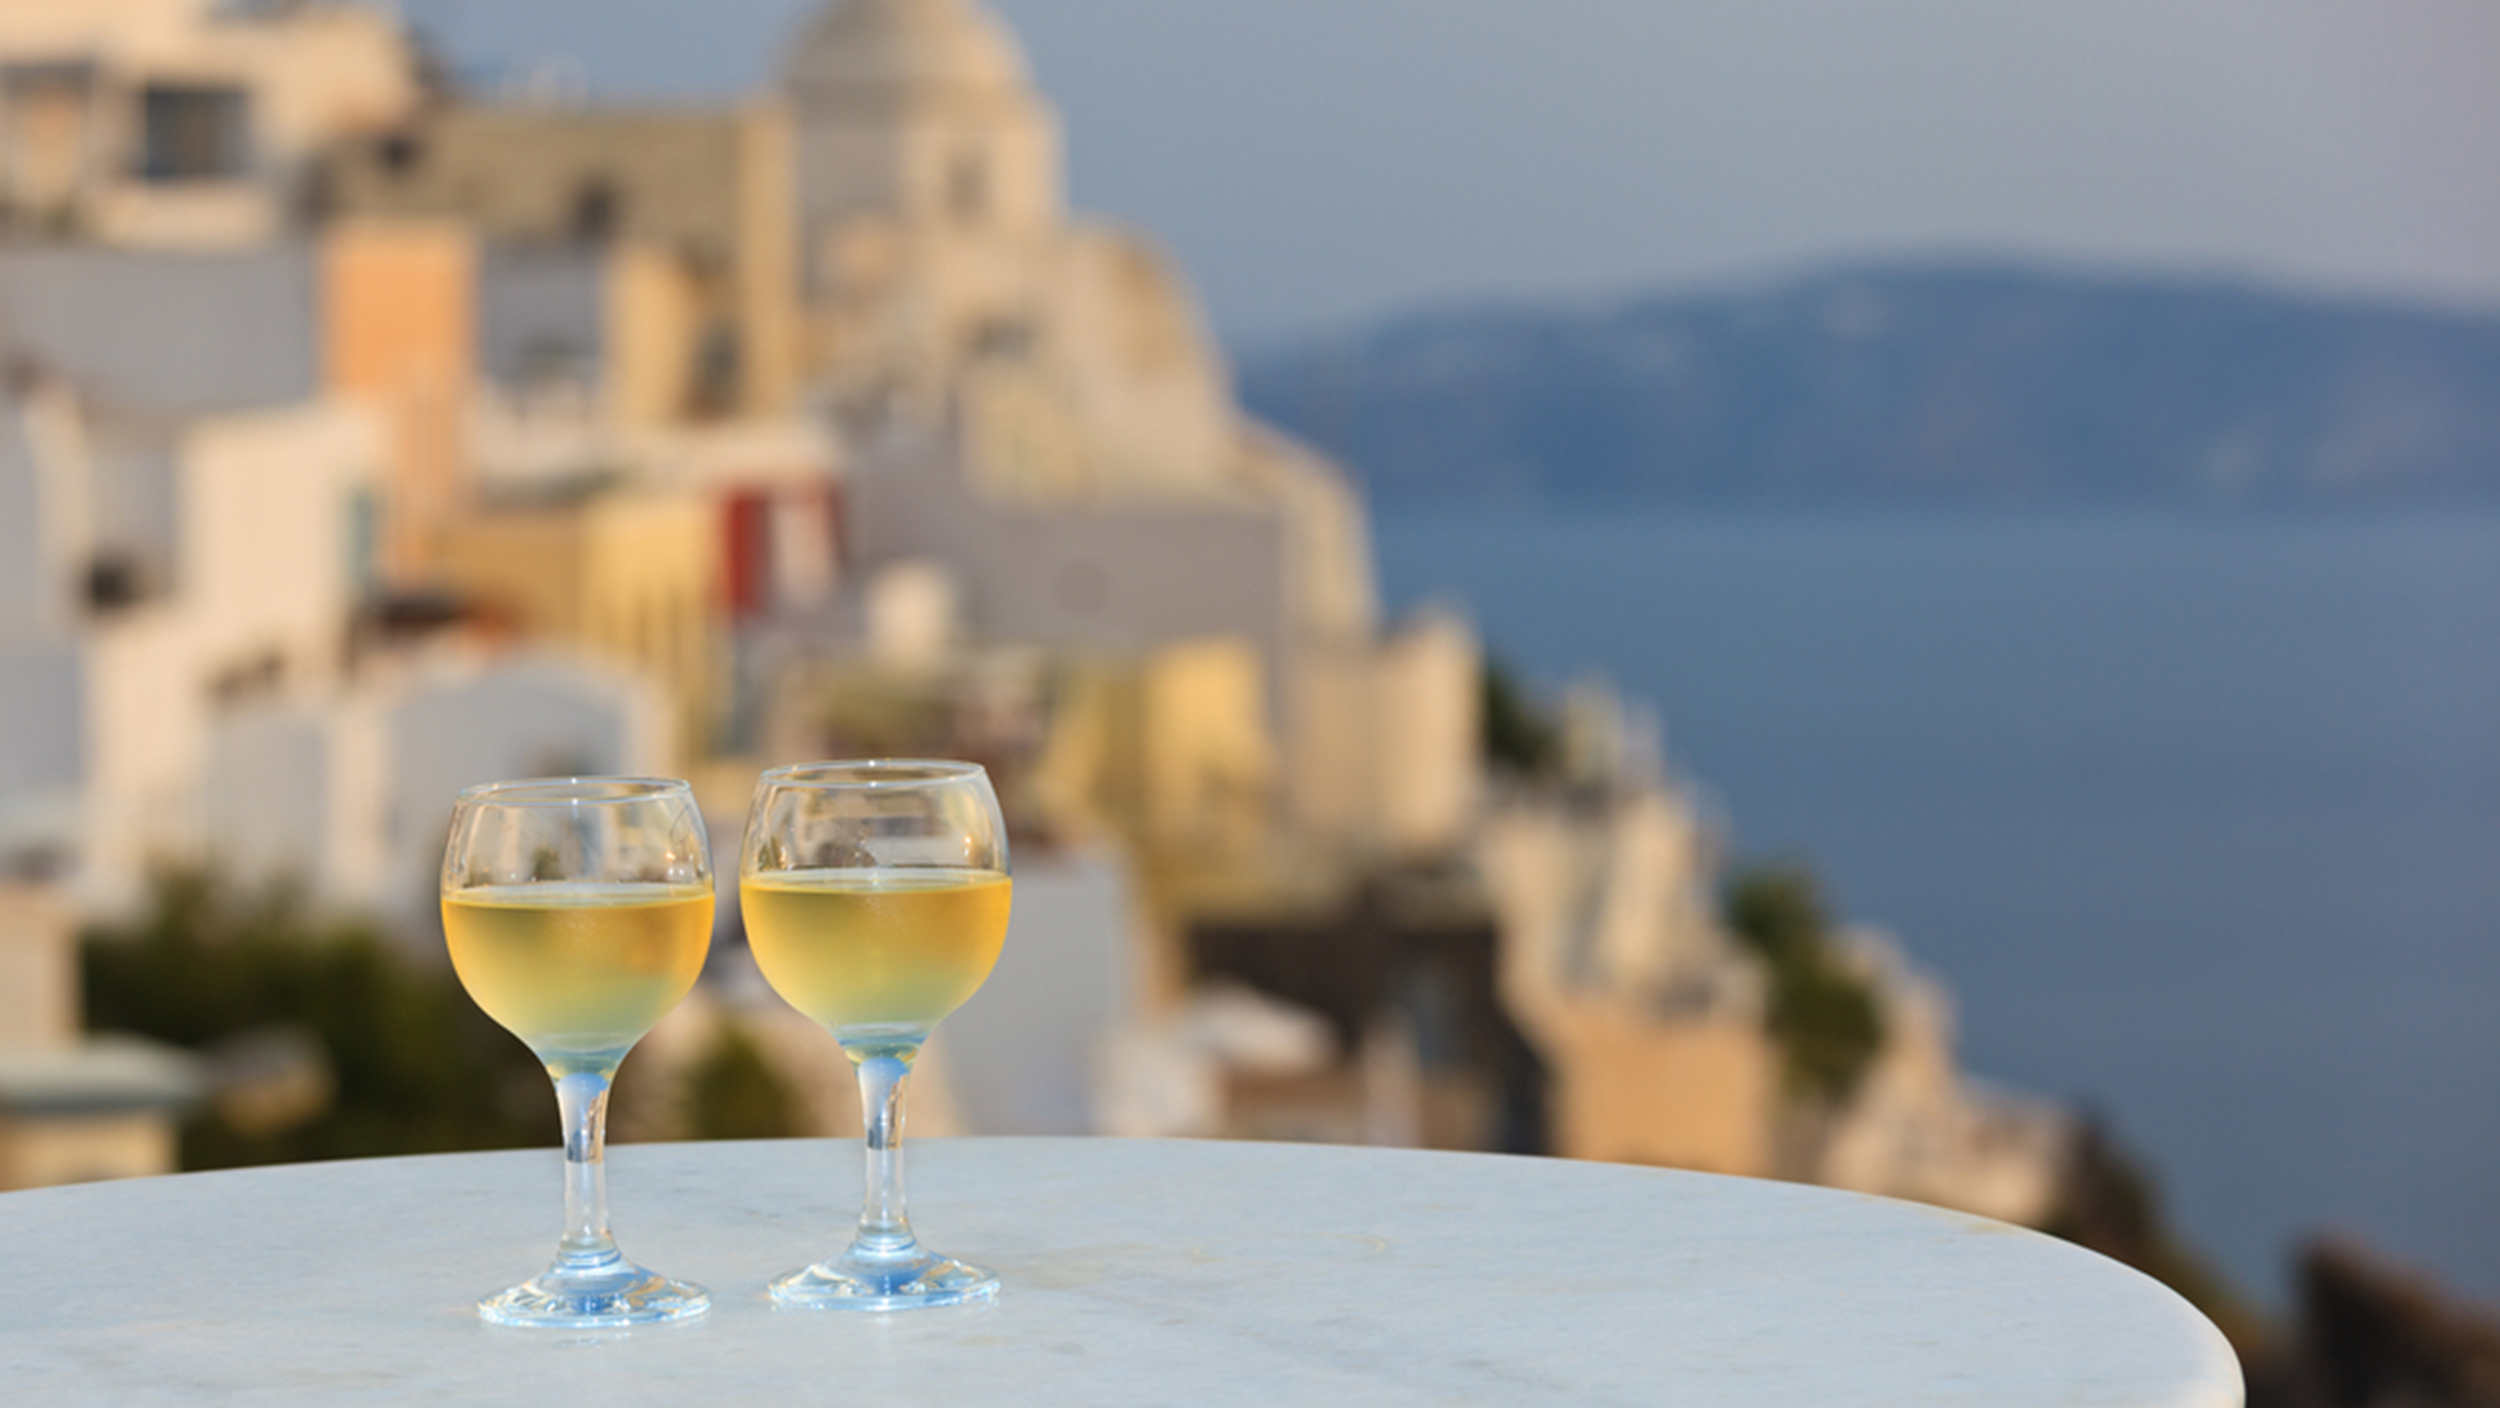 Edward Hd Wallpaper Try These Wines For A Taste Of Santorini Today Com